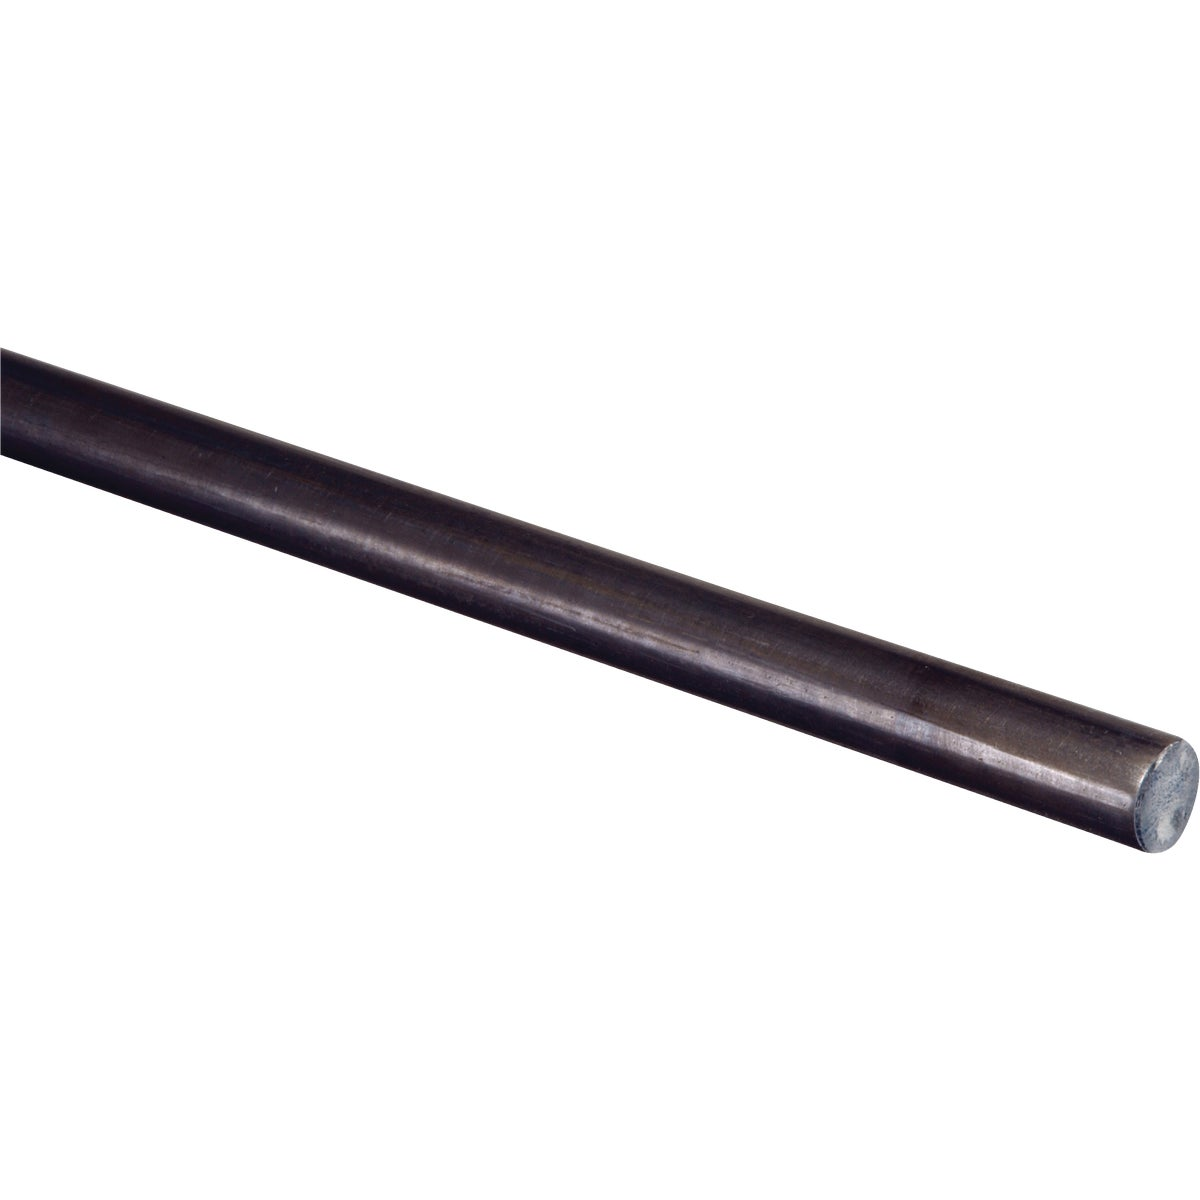 5/16X48 PS SMOOTH ROD - N215335 by National Mfg Co